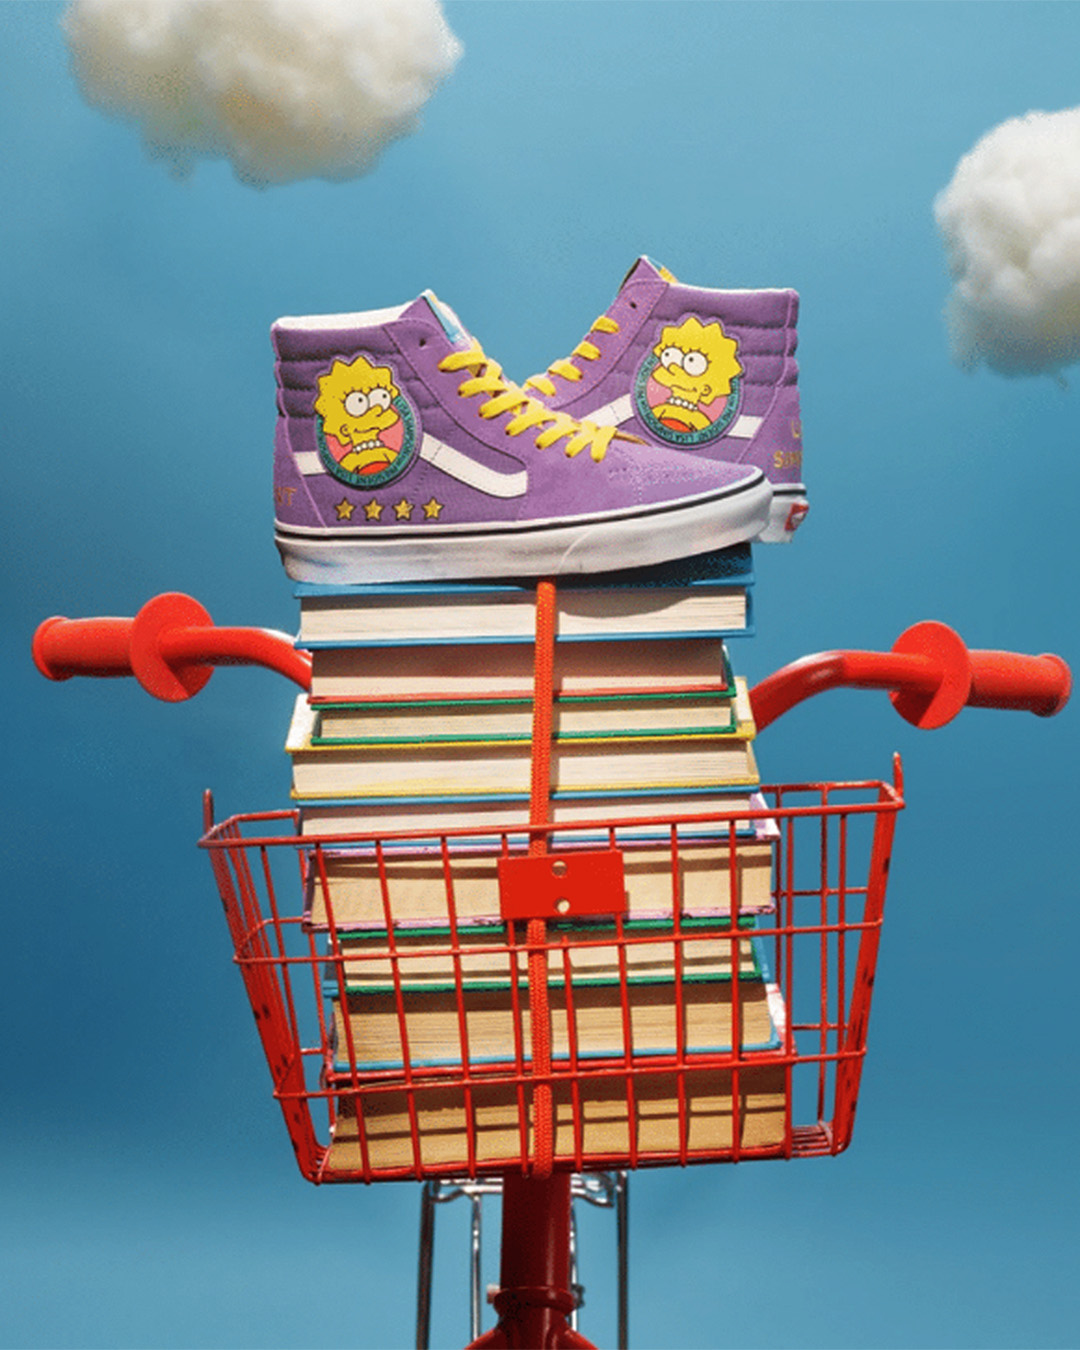 The Simpsons x Vans Sk8-Hi tops featuring Lisa Simpson and emblazoned with a Lisa Simpson badge.